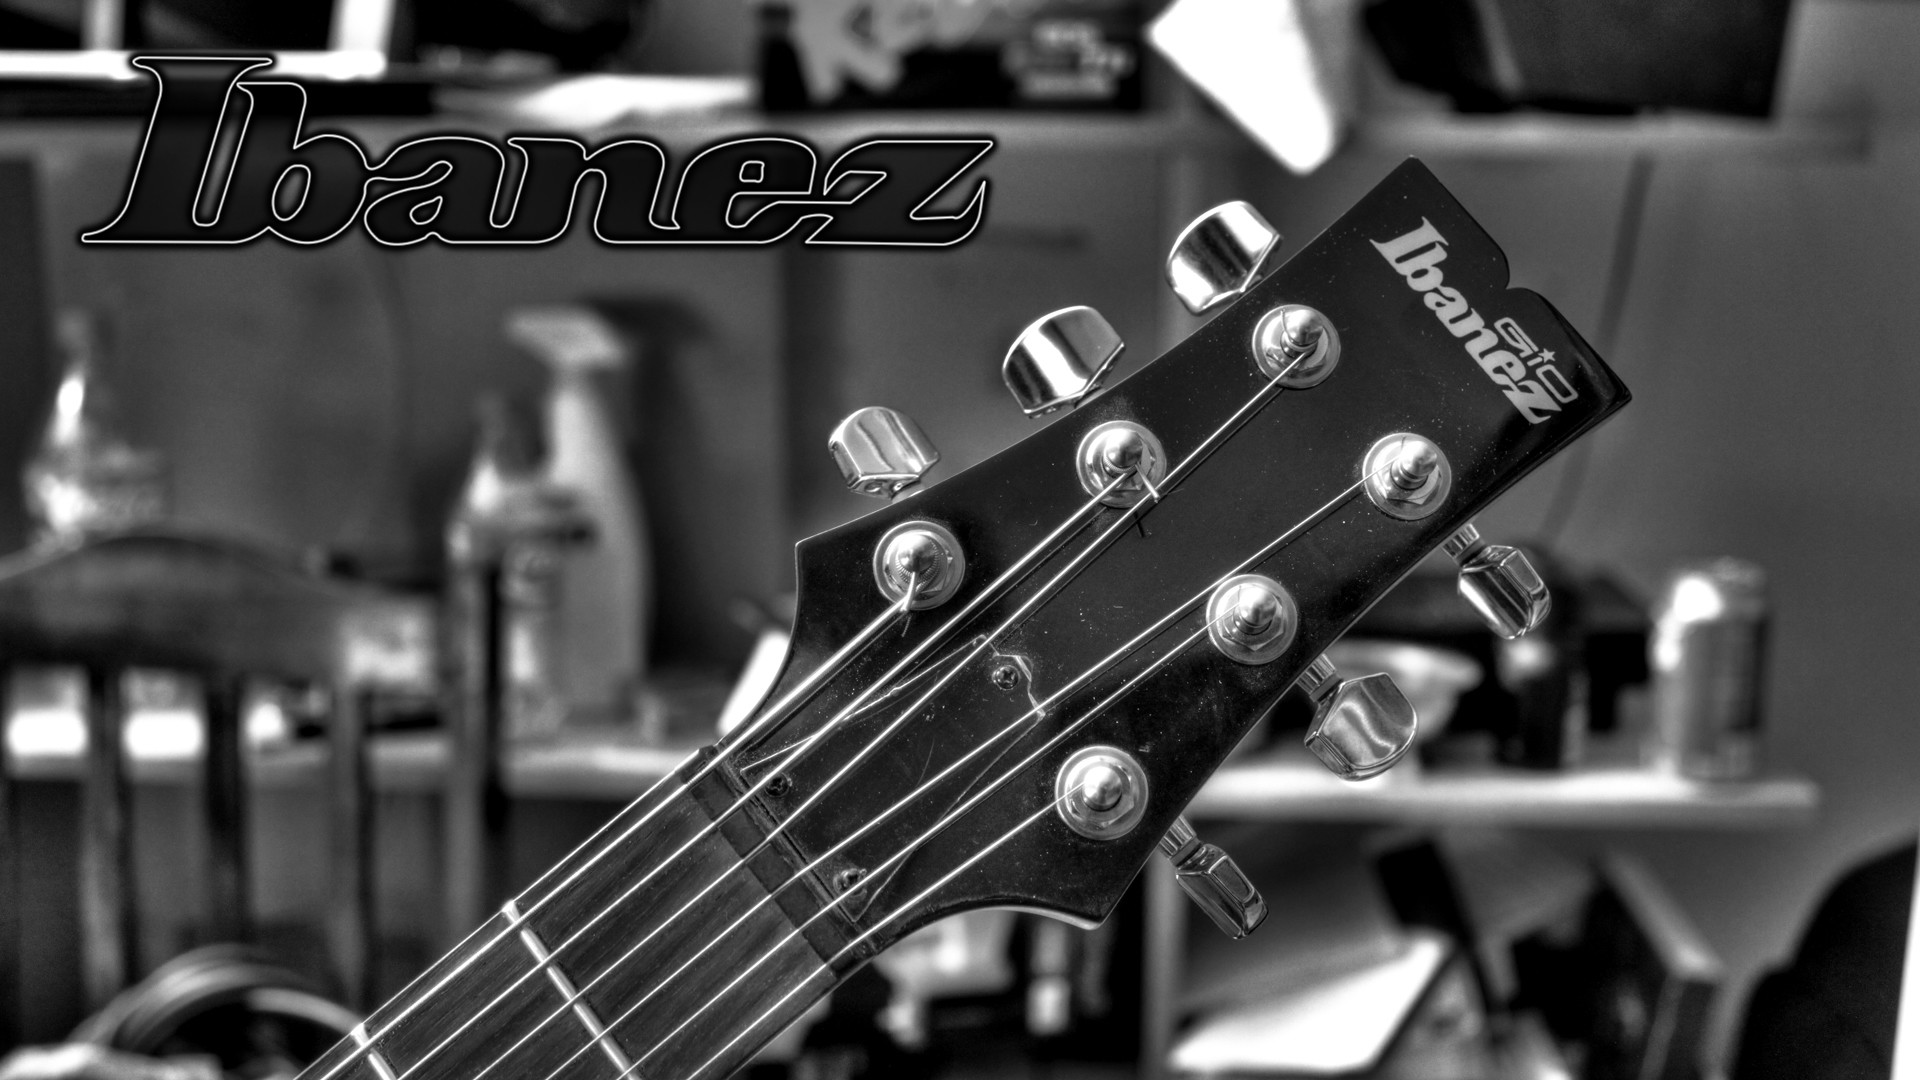 Black And White Ibanez Guitar Picture 4756